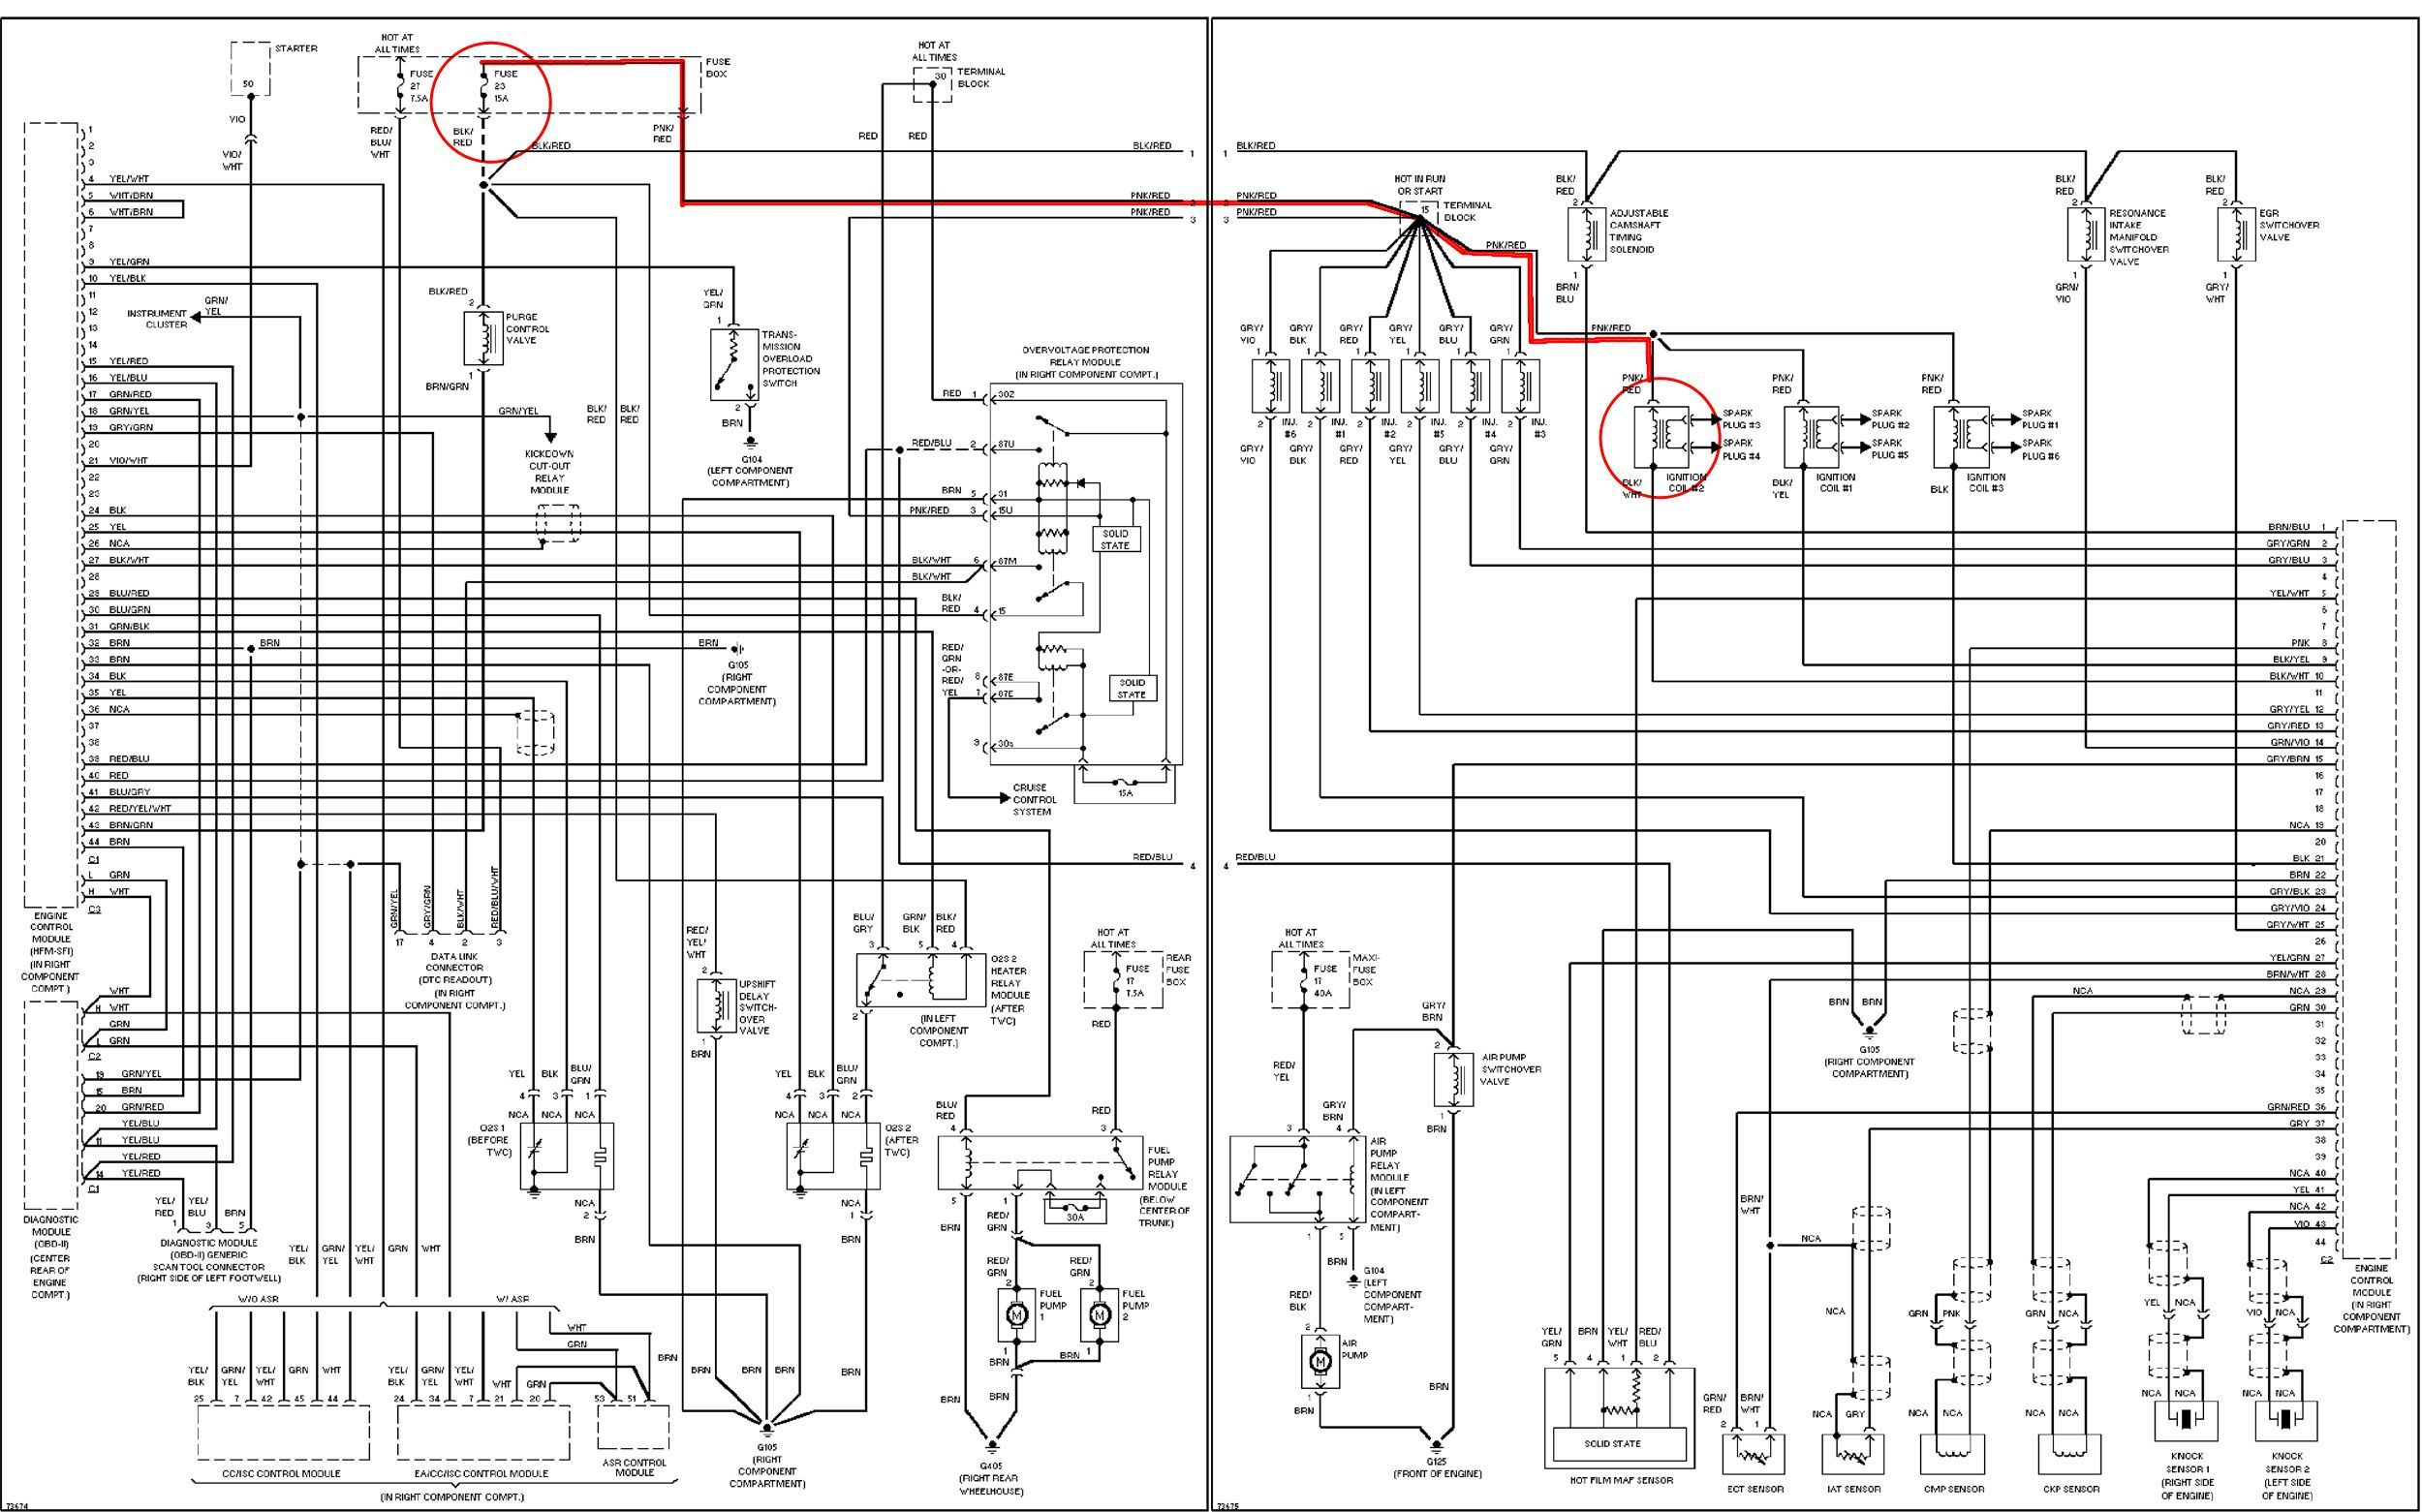 K1BLM To Mercedes Benz Wiring Diagram | wiring schematics | Mercedes benz, Benz, Diagram